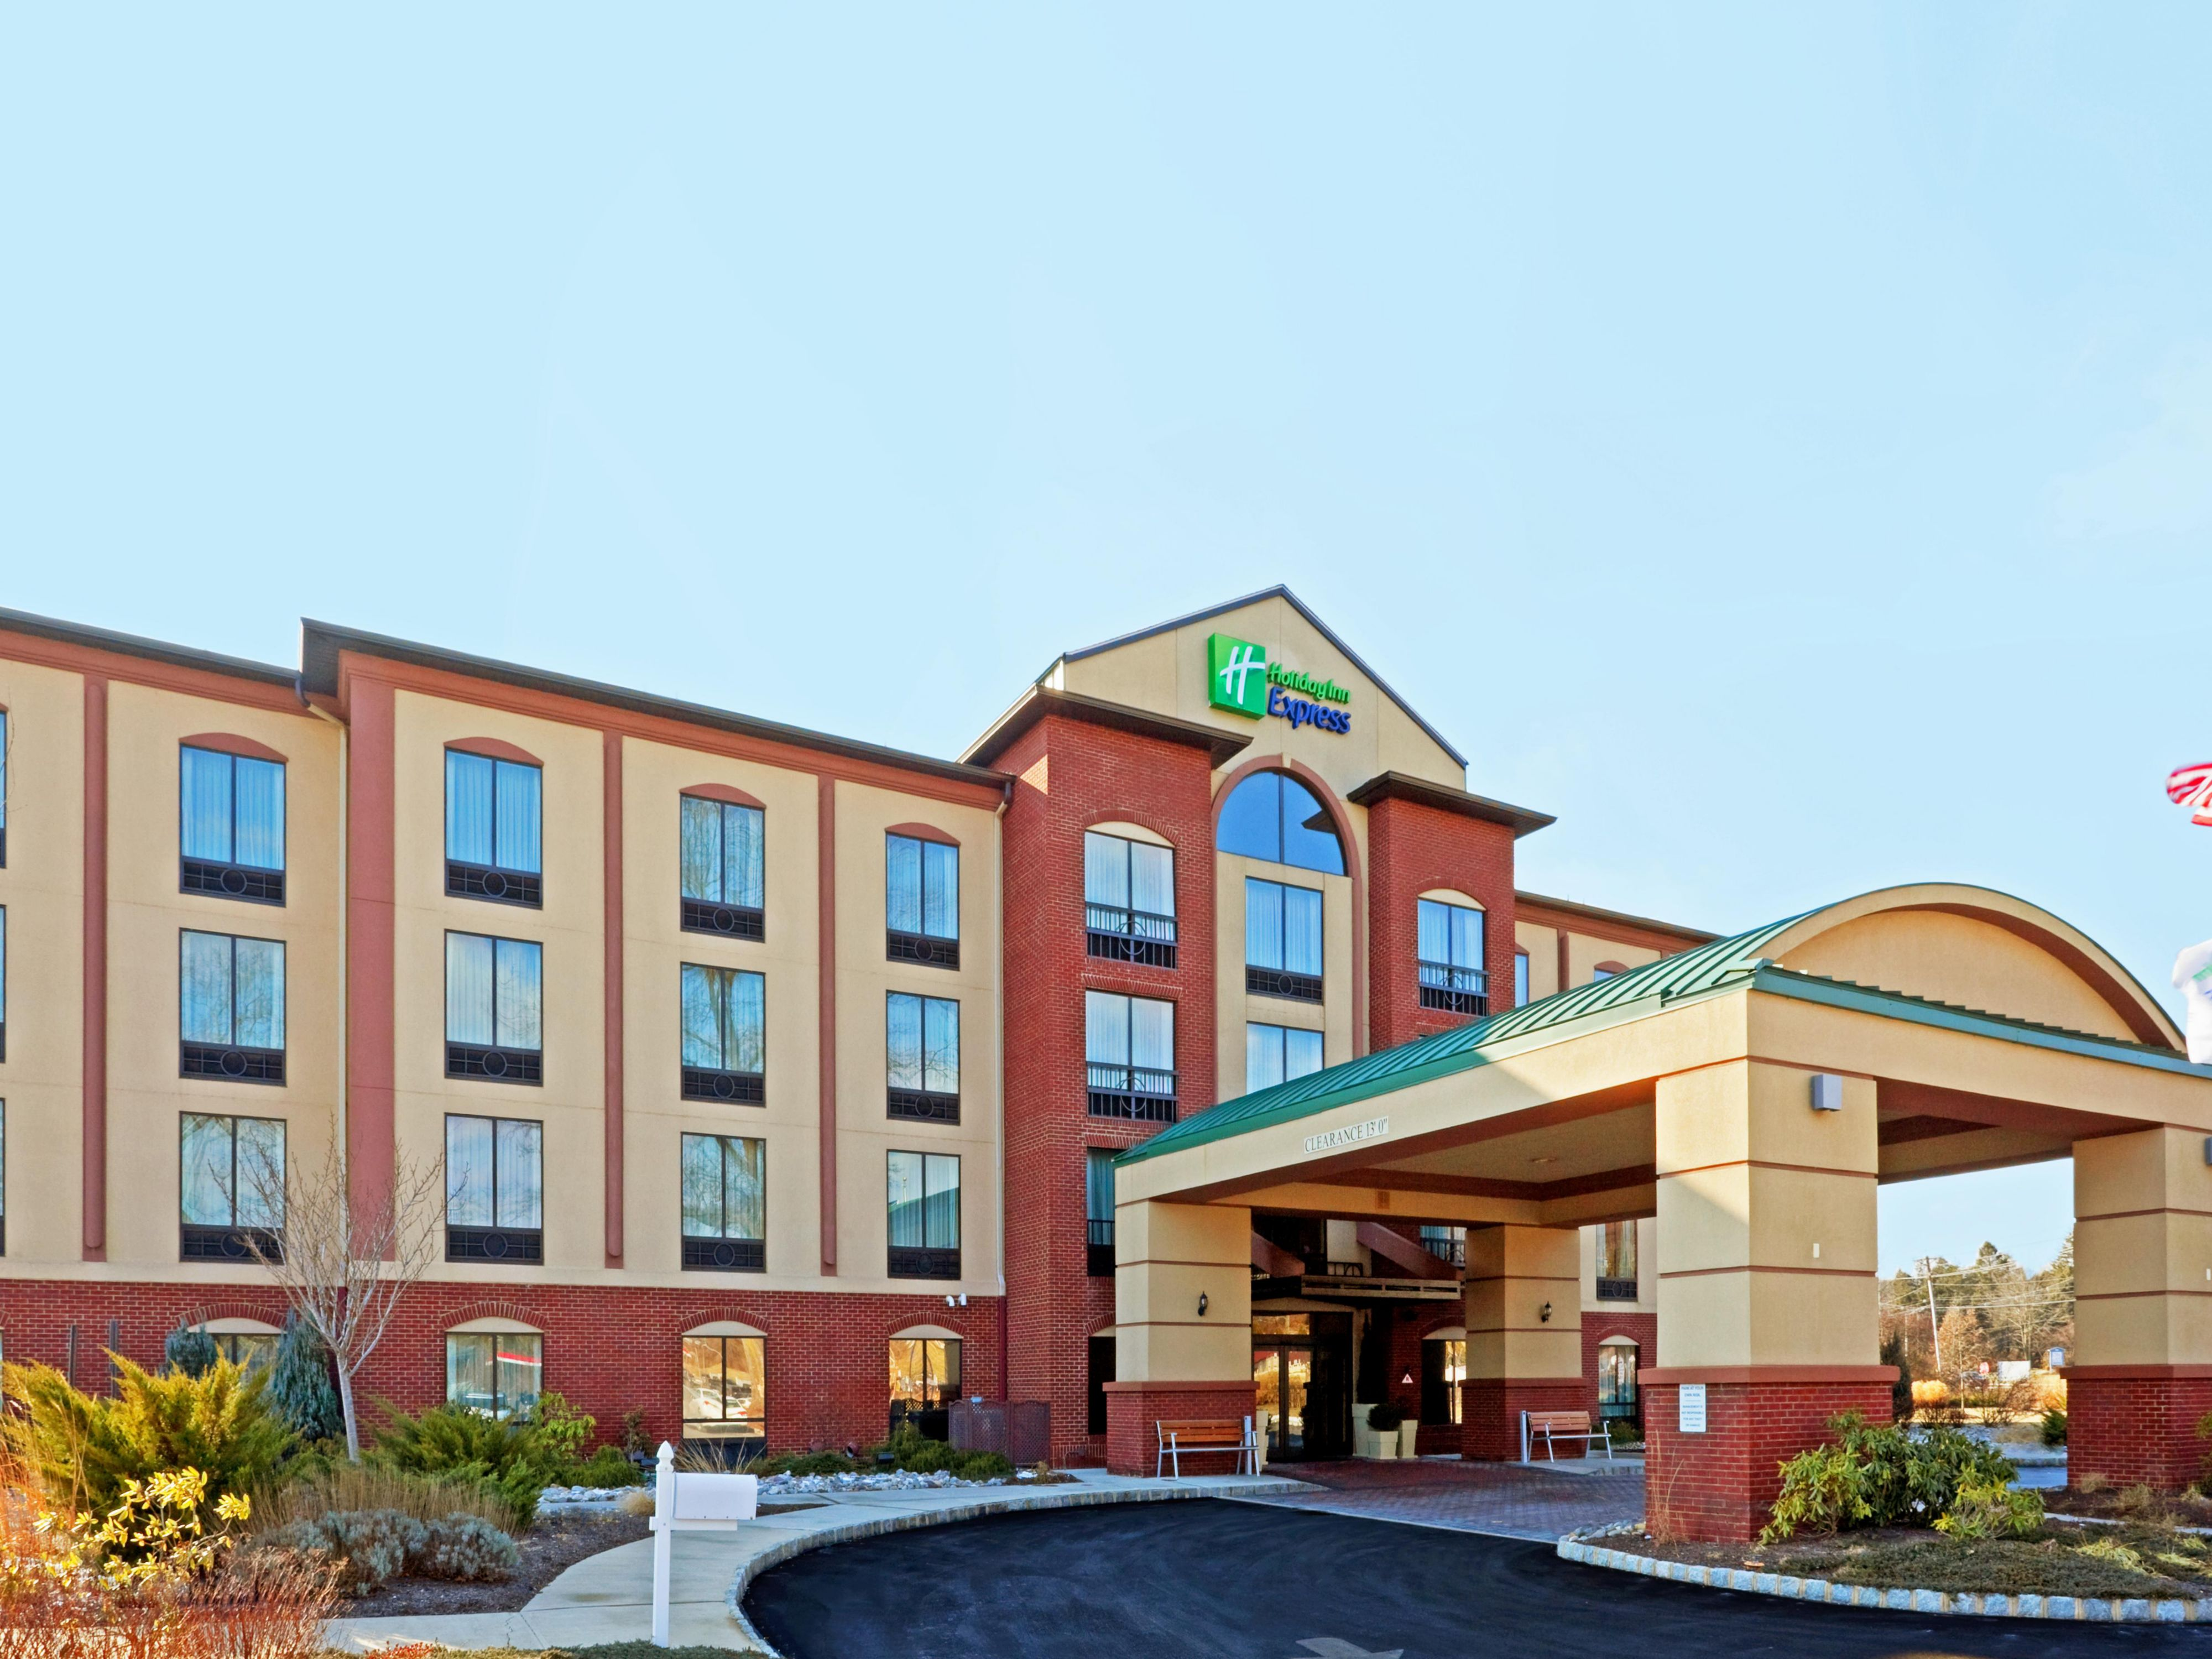 Welcome to the Holiday Inn Express & Suites Branchburg